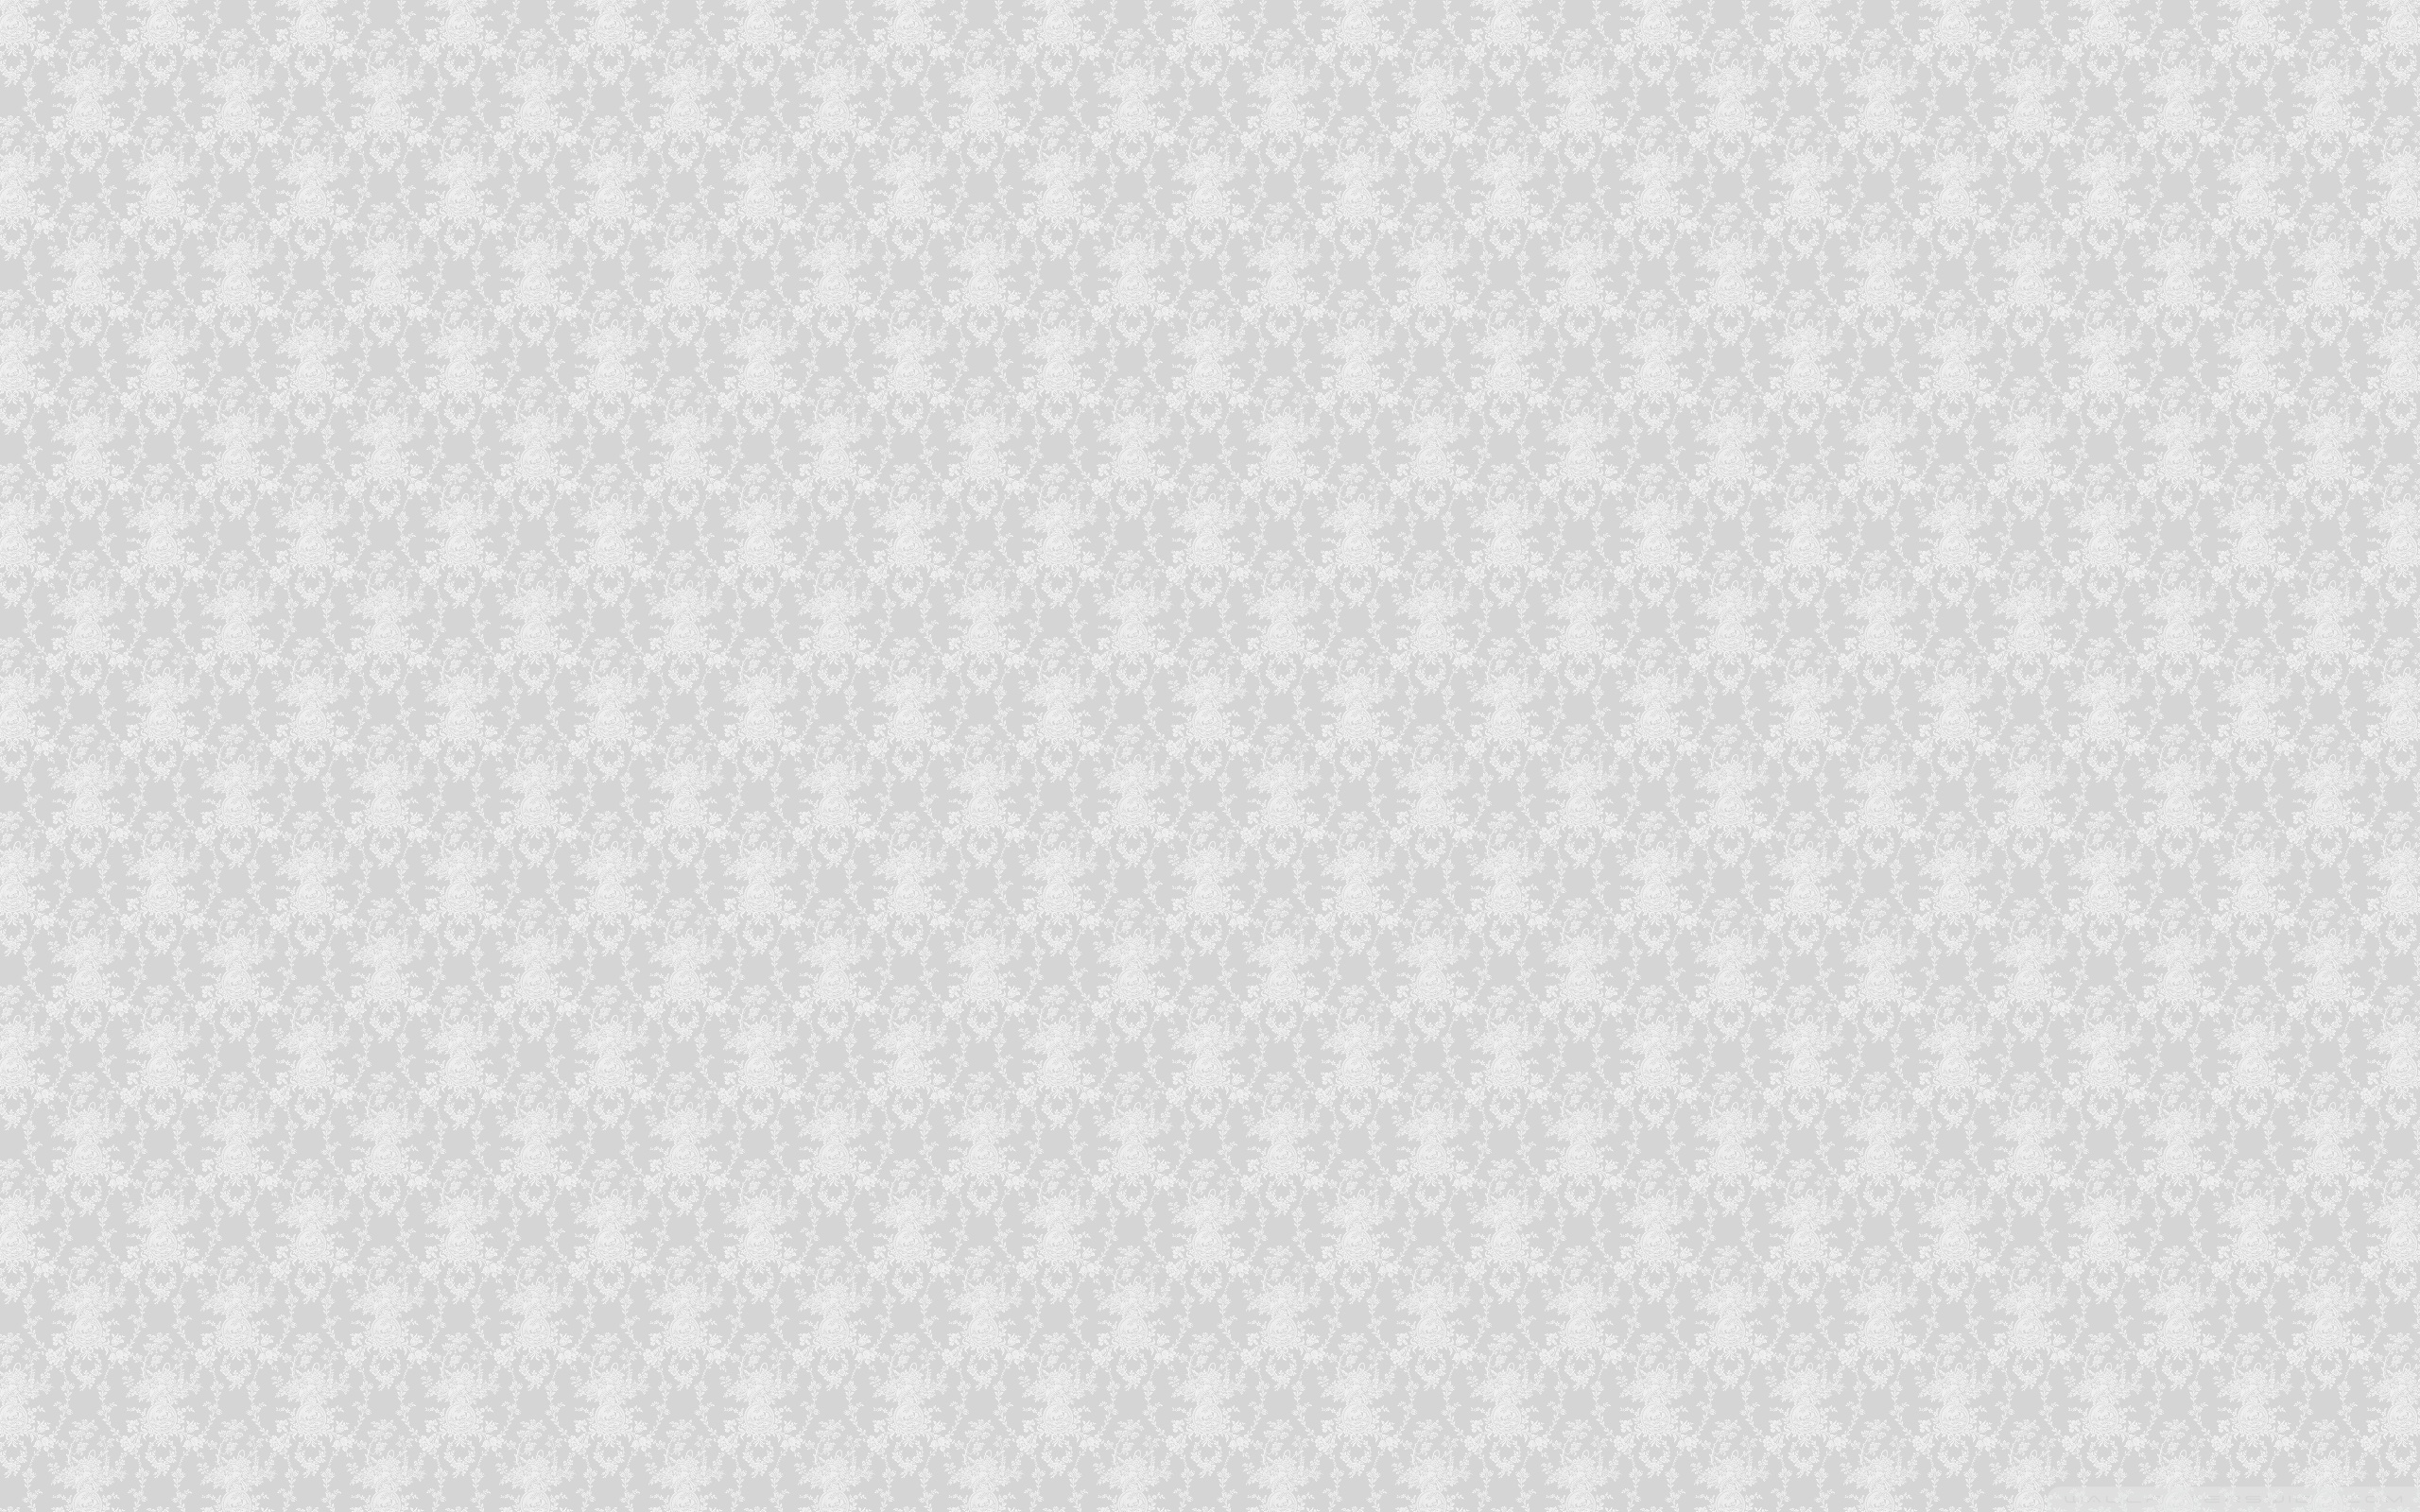 White Pattern Free PPT Backgrounds for your PowerPoint